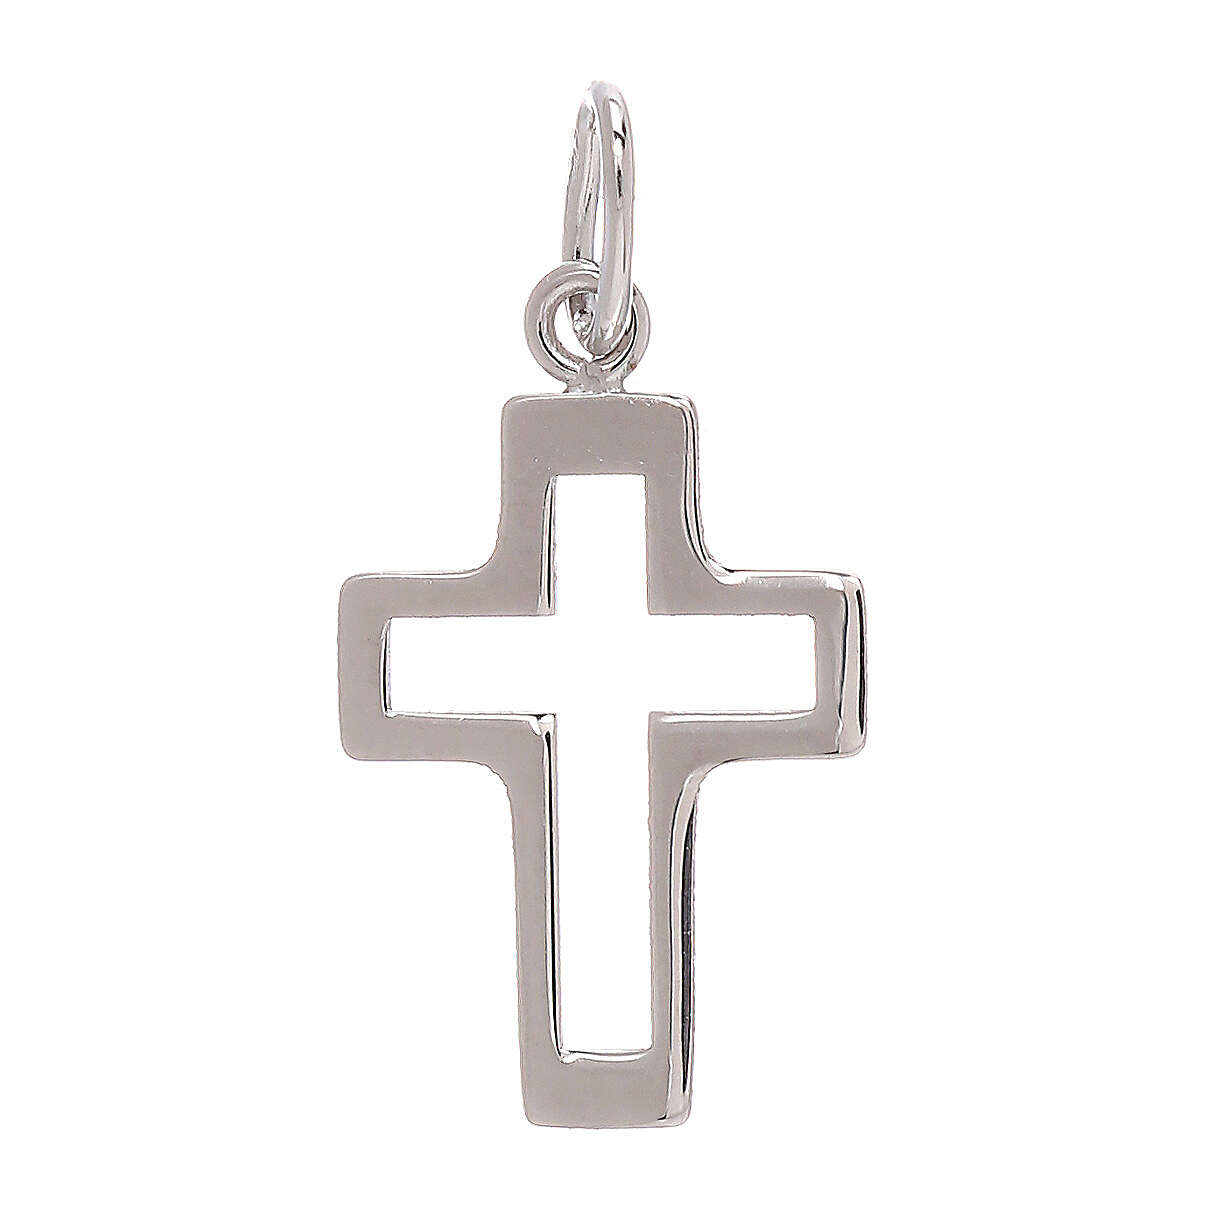 Perforated cross pendant 750/00 white gold 0.35 gr 4